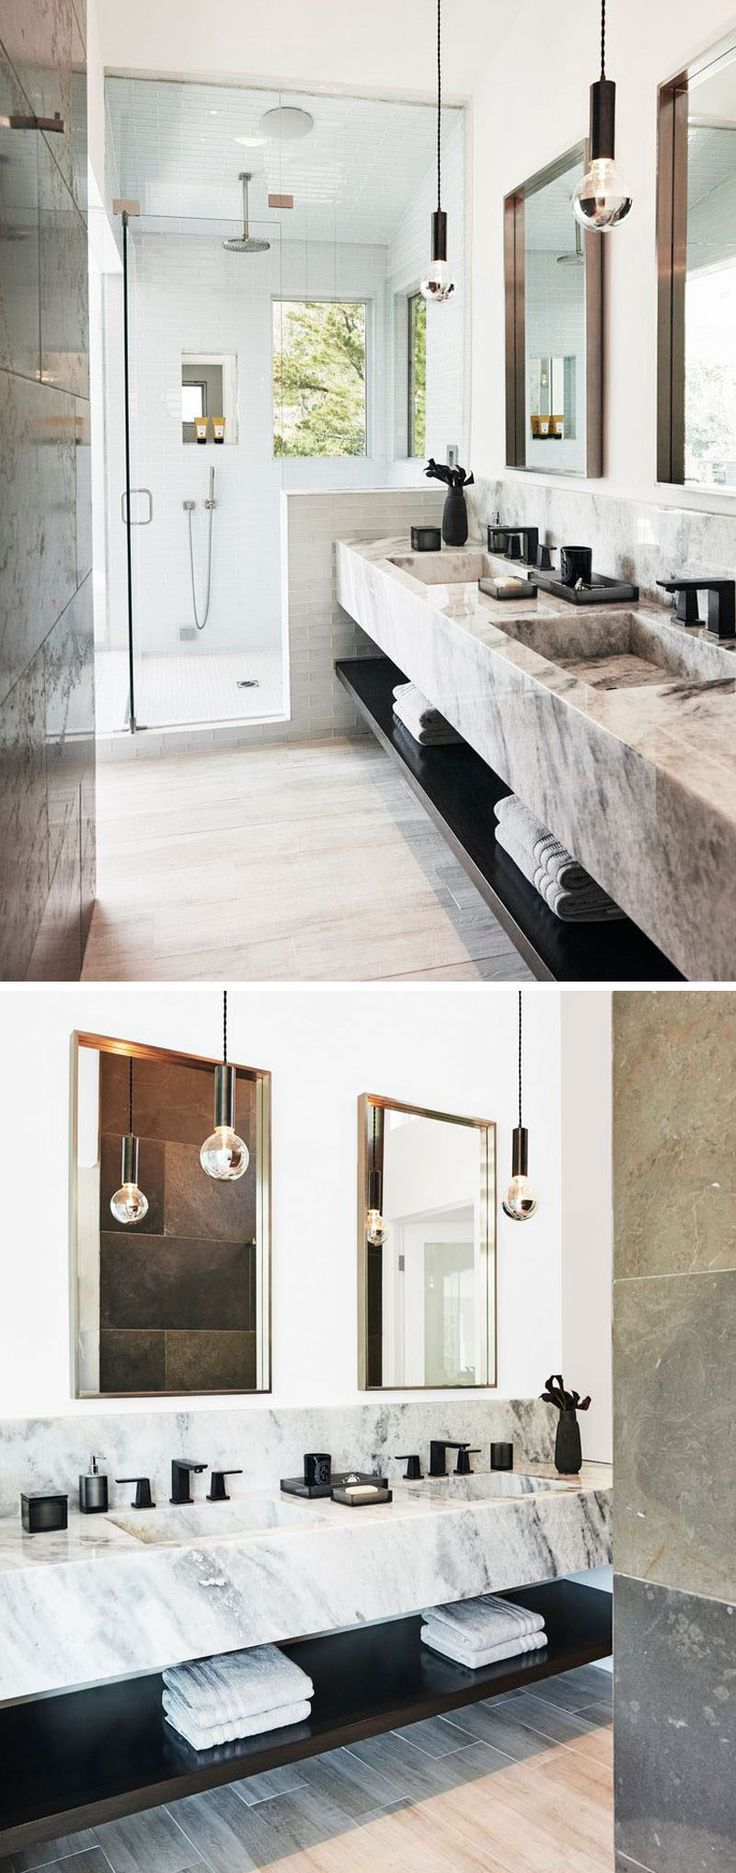 In this master bathroom, there's an oversized steam shower and a custom dual vanity made from marble.